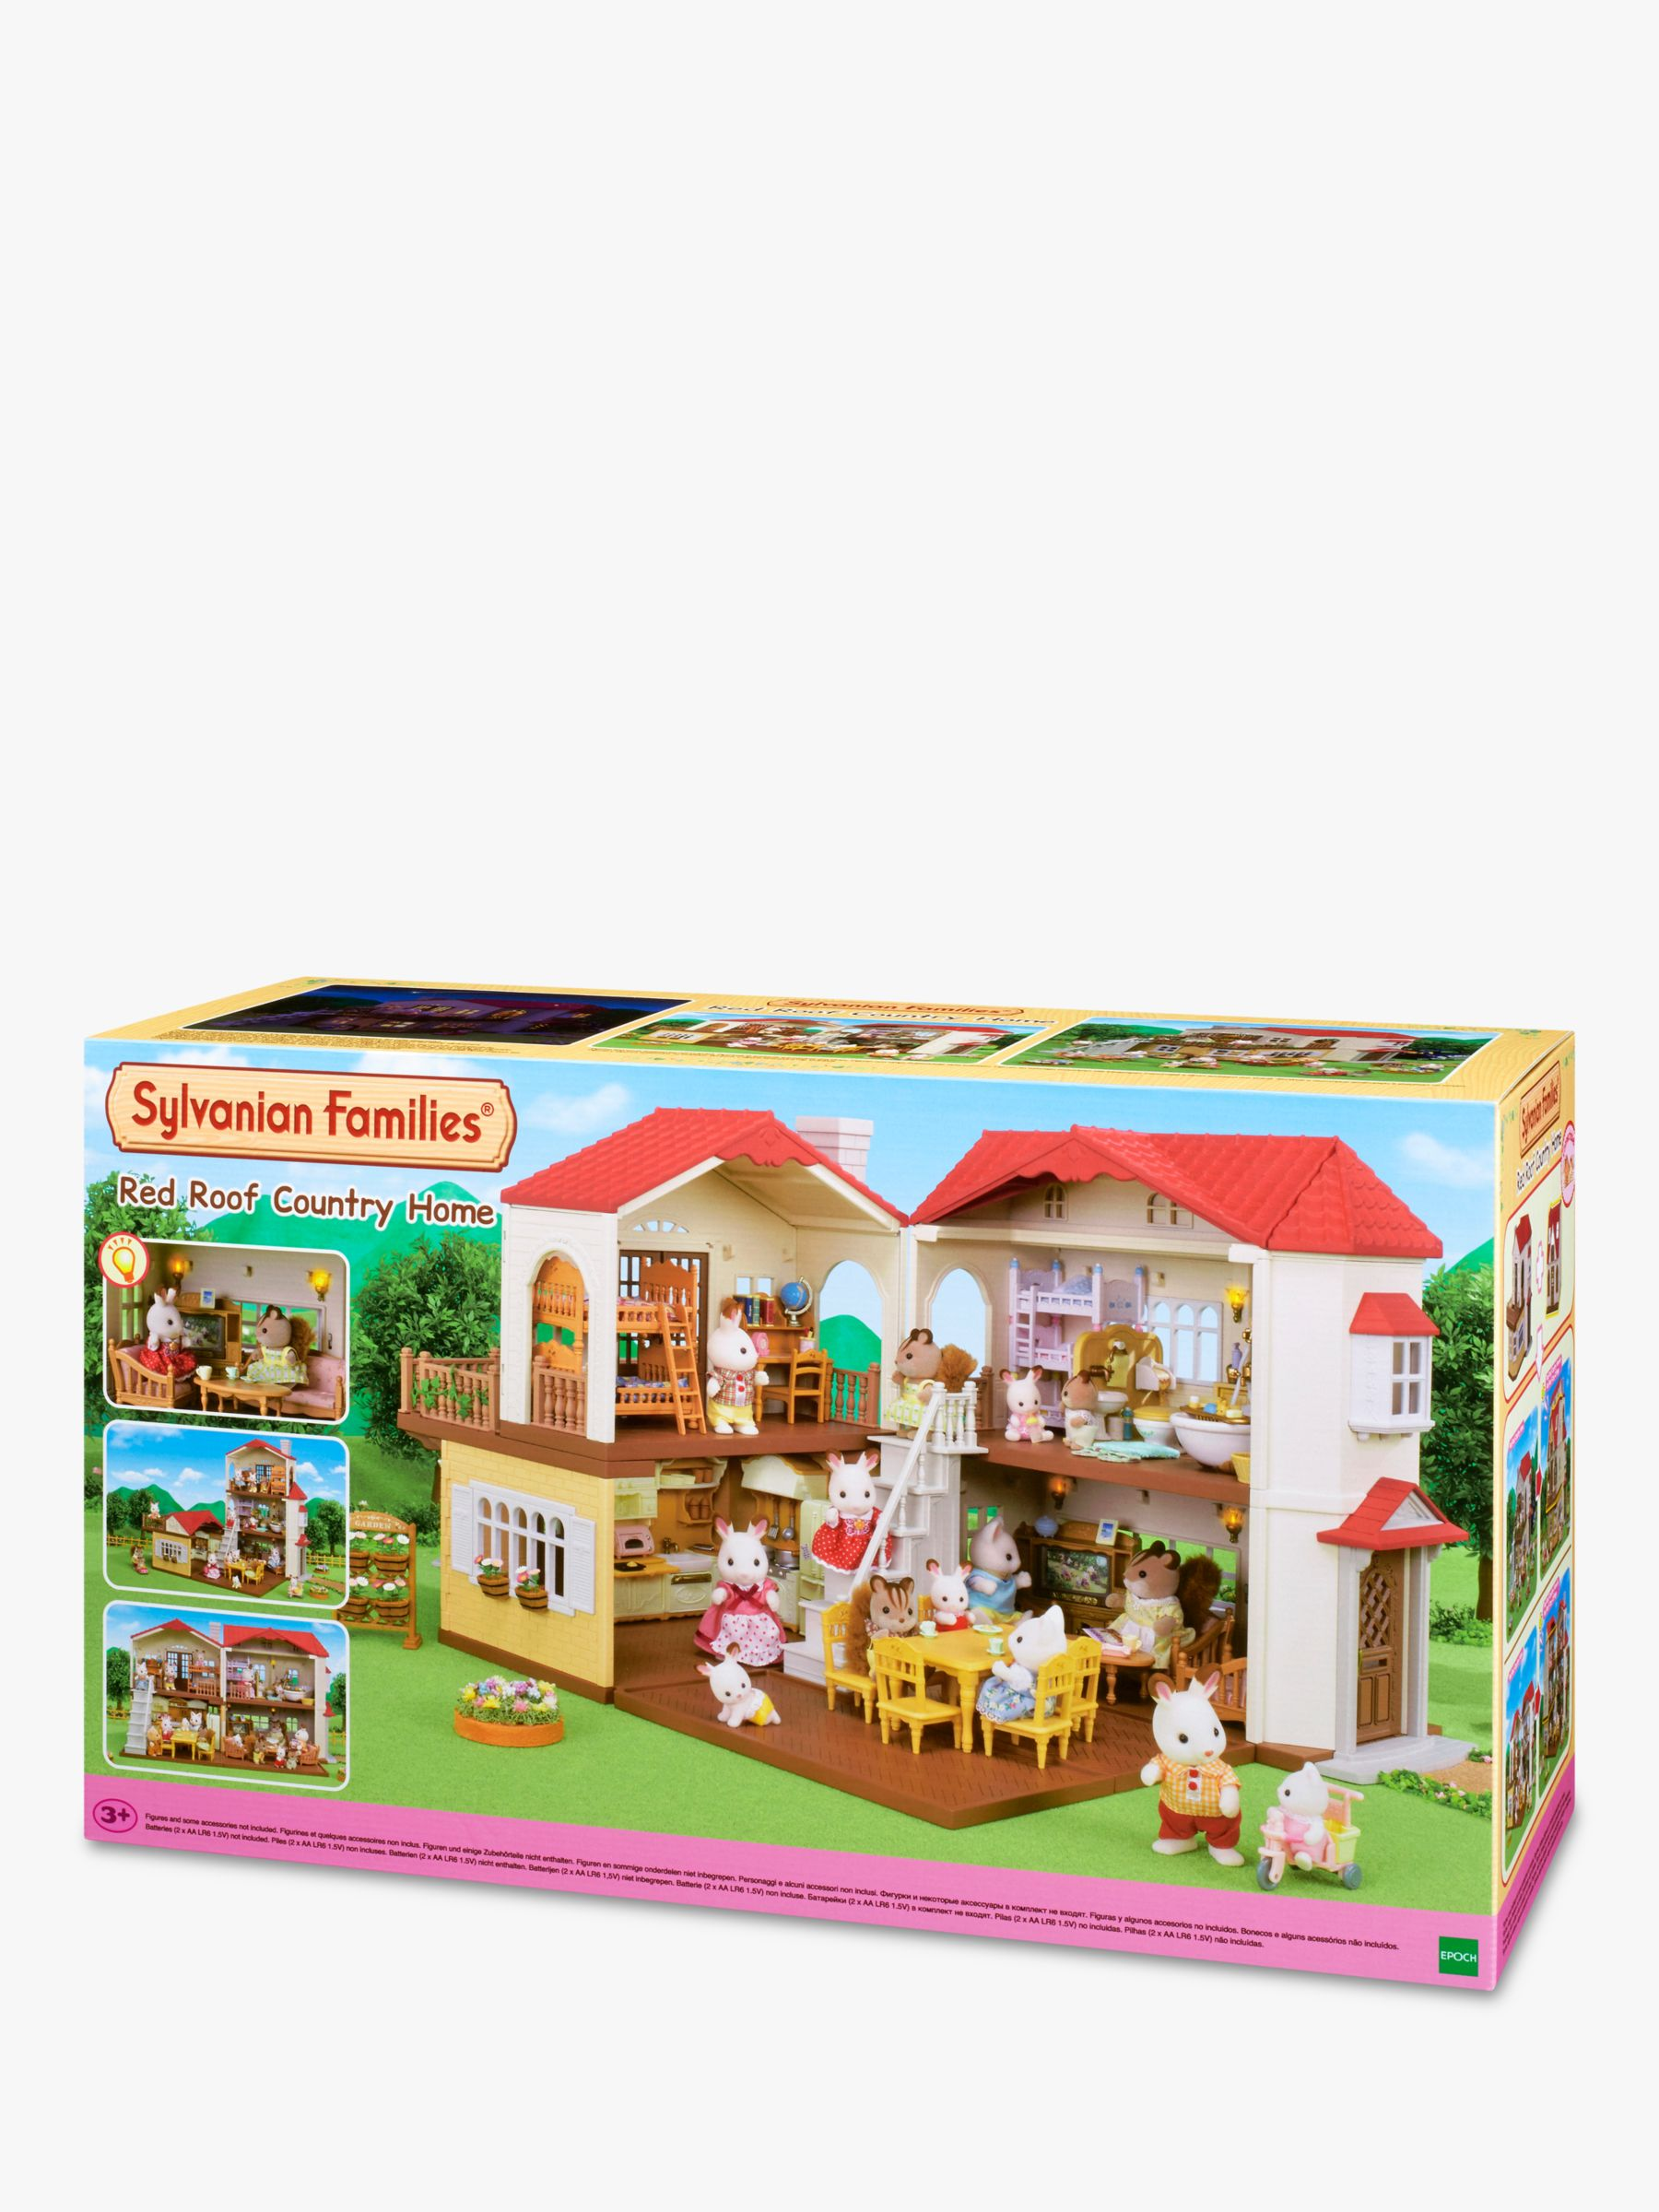 2 Sylvanian Families Sets Breakfast and Outing Accessory Sets Sold Together